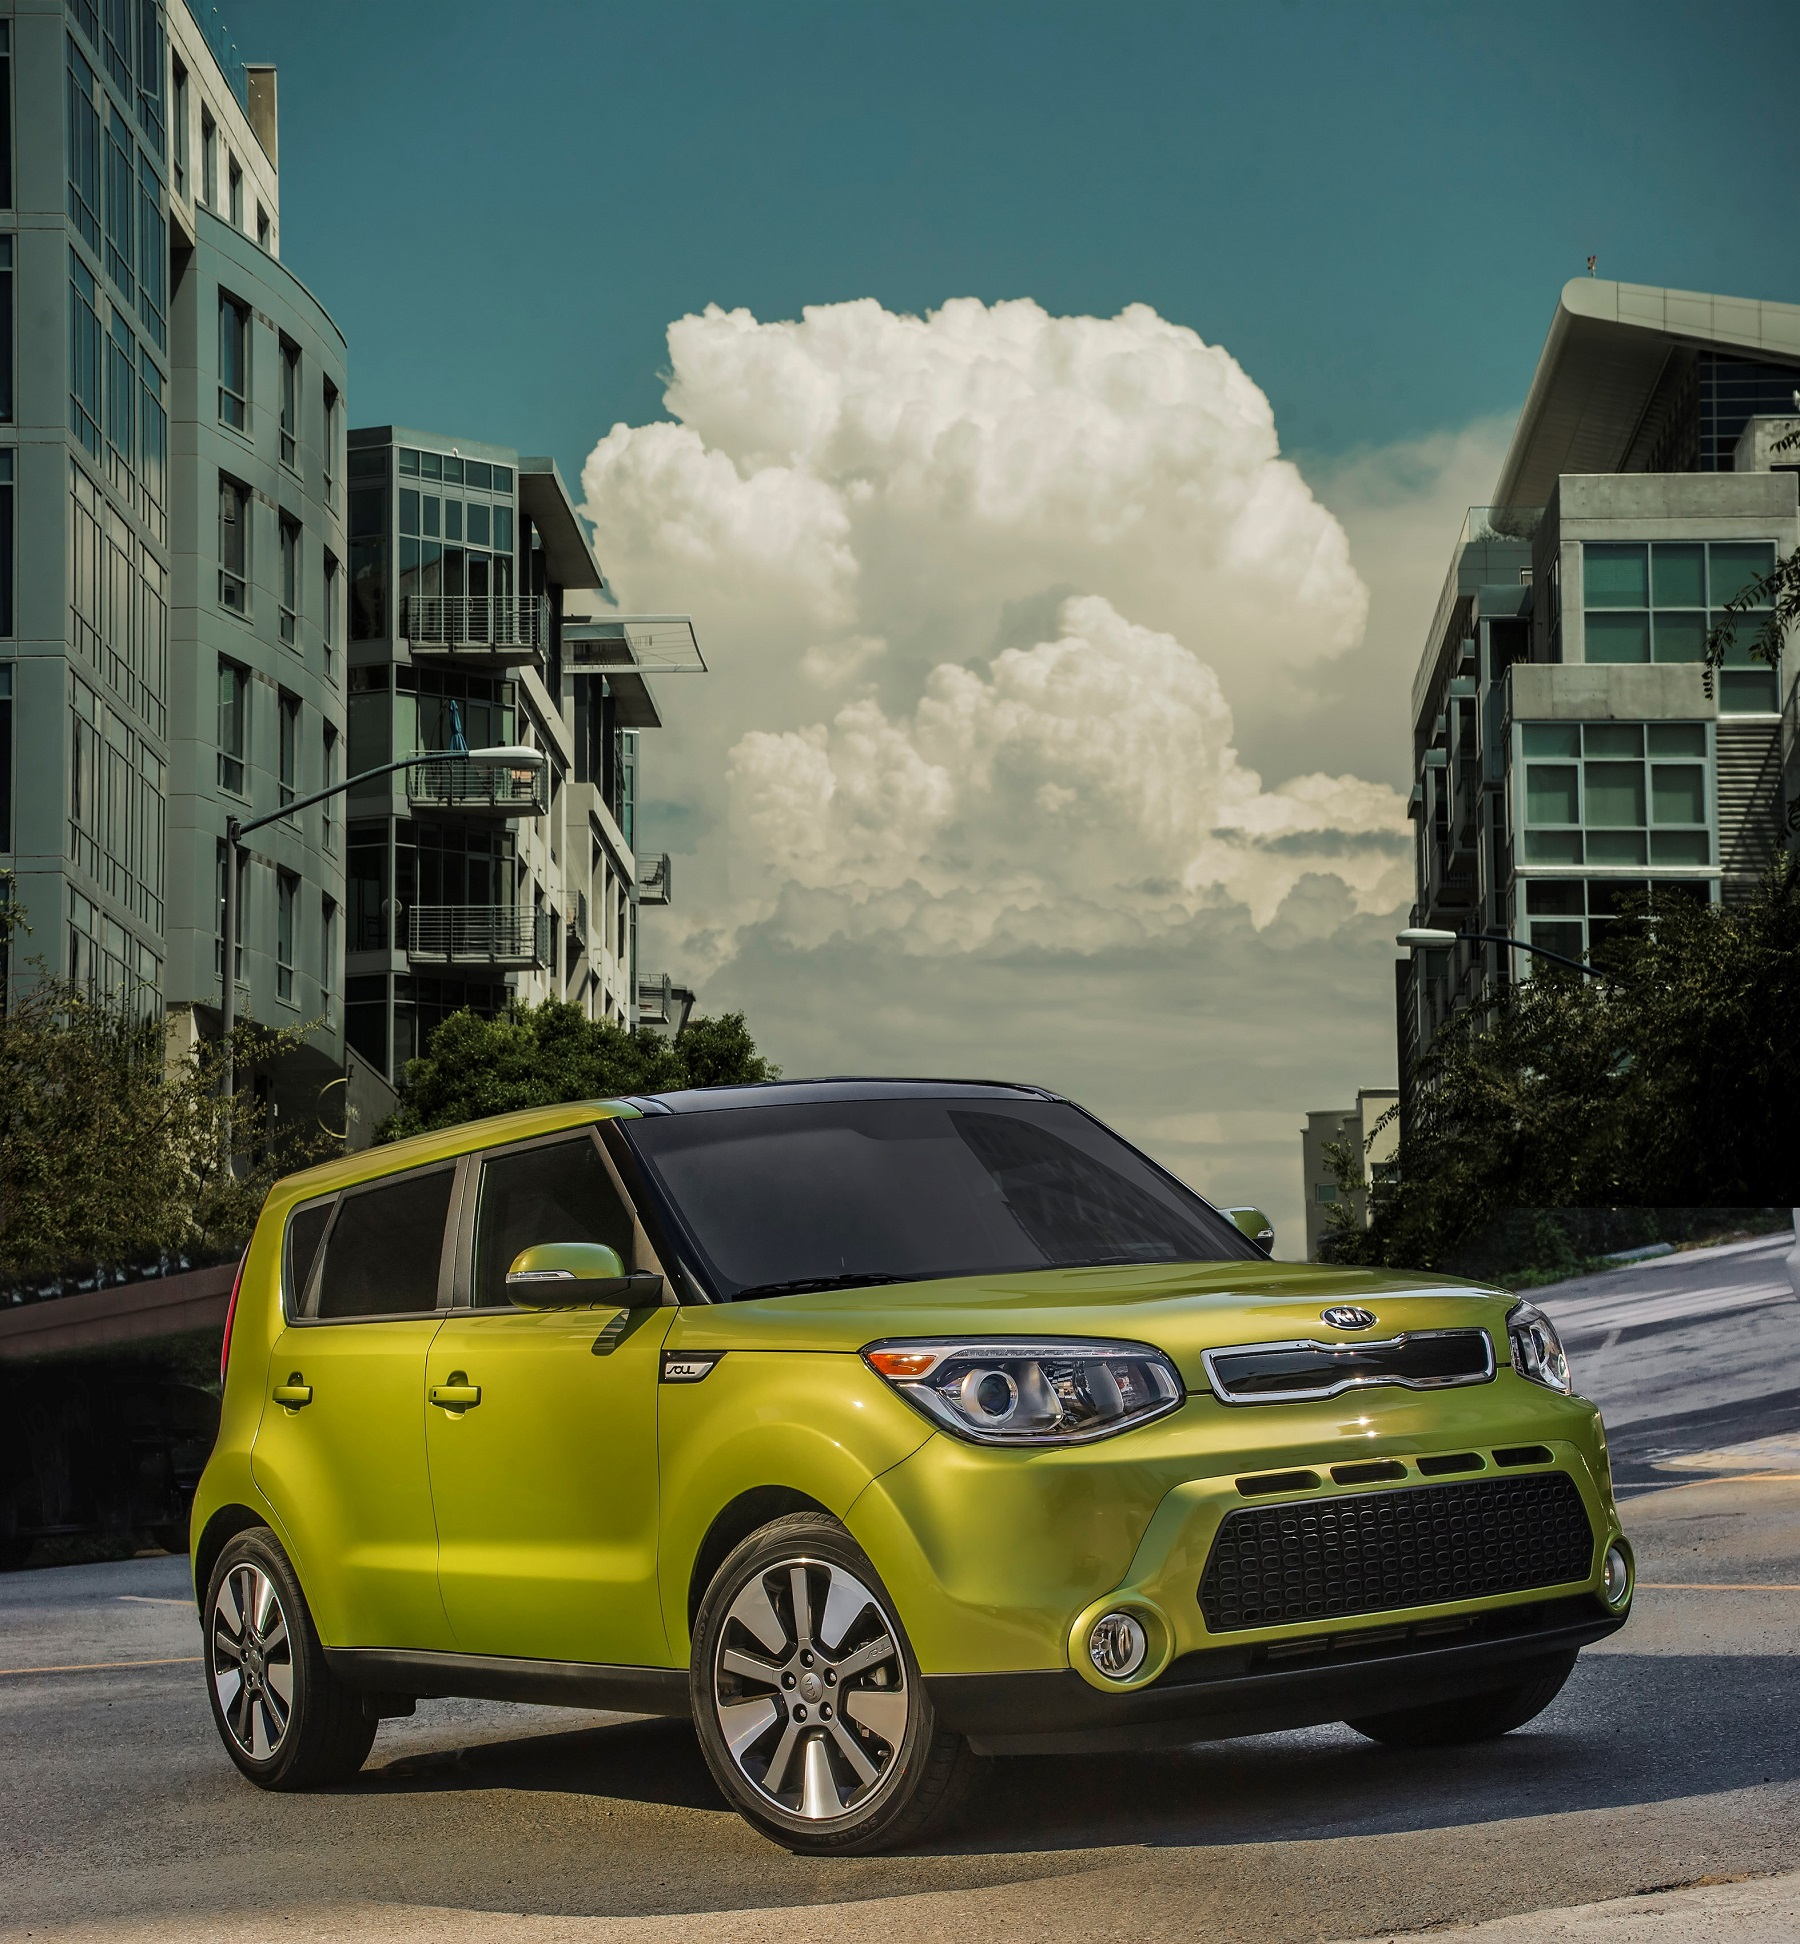 Manufacturer photo: The all-new Soul displays its own individuality through a blend of funky, fun-to-drive characteristics and premium upgrades intended to set it apart from the pack